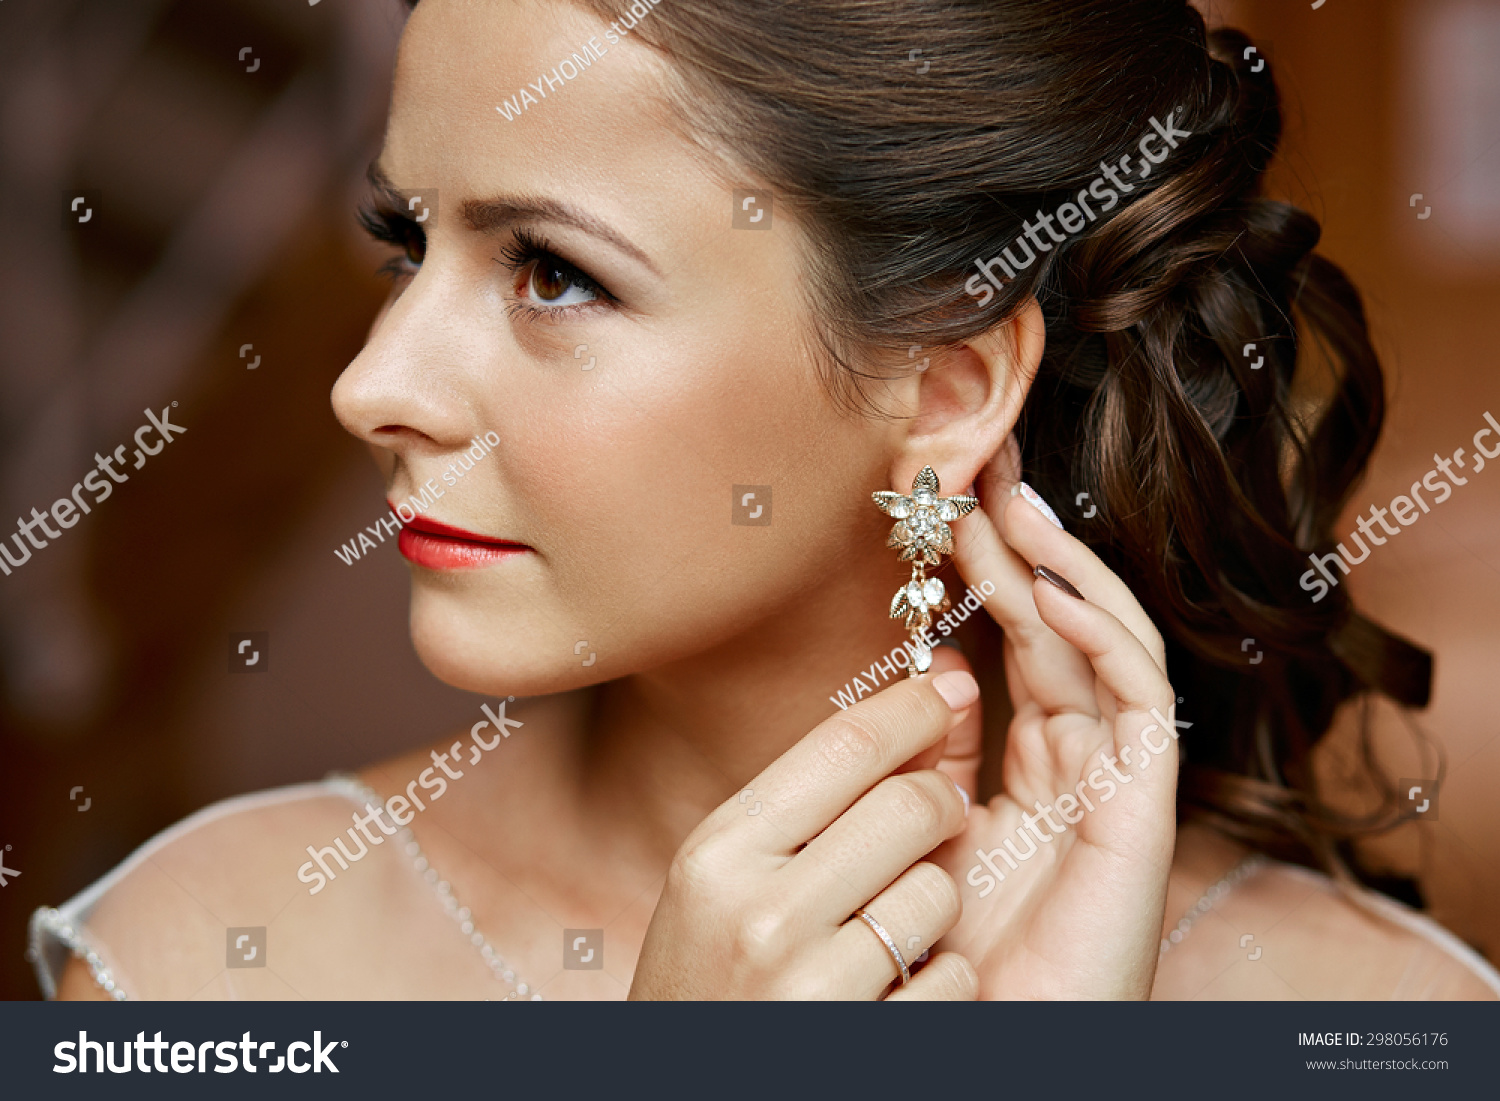 hd in celebrity stud face black emma girl woman wallpaper watson earrings flare